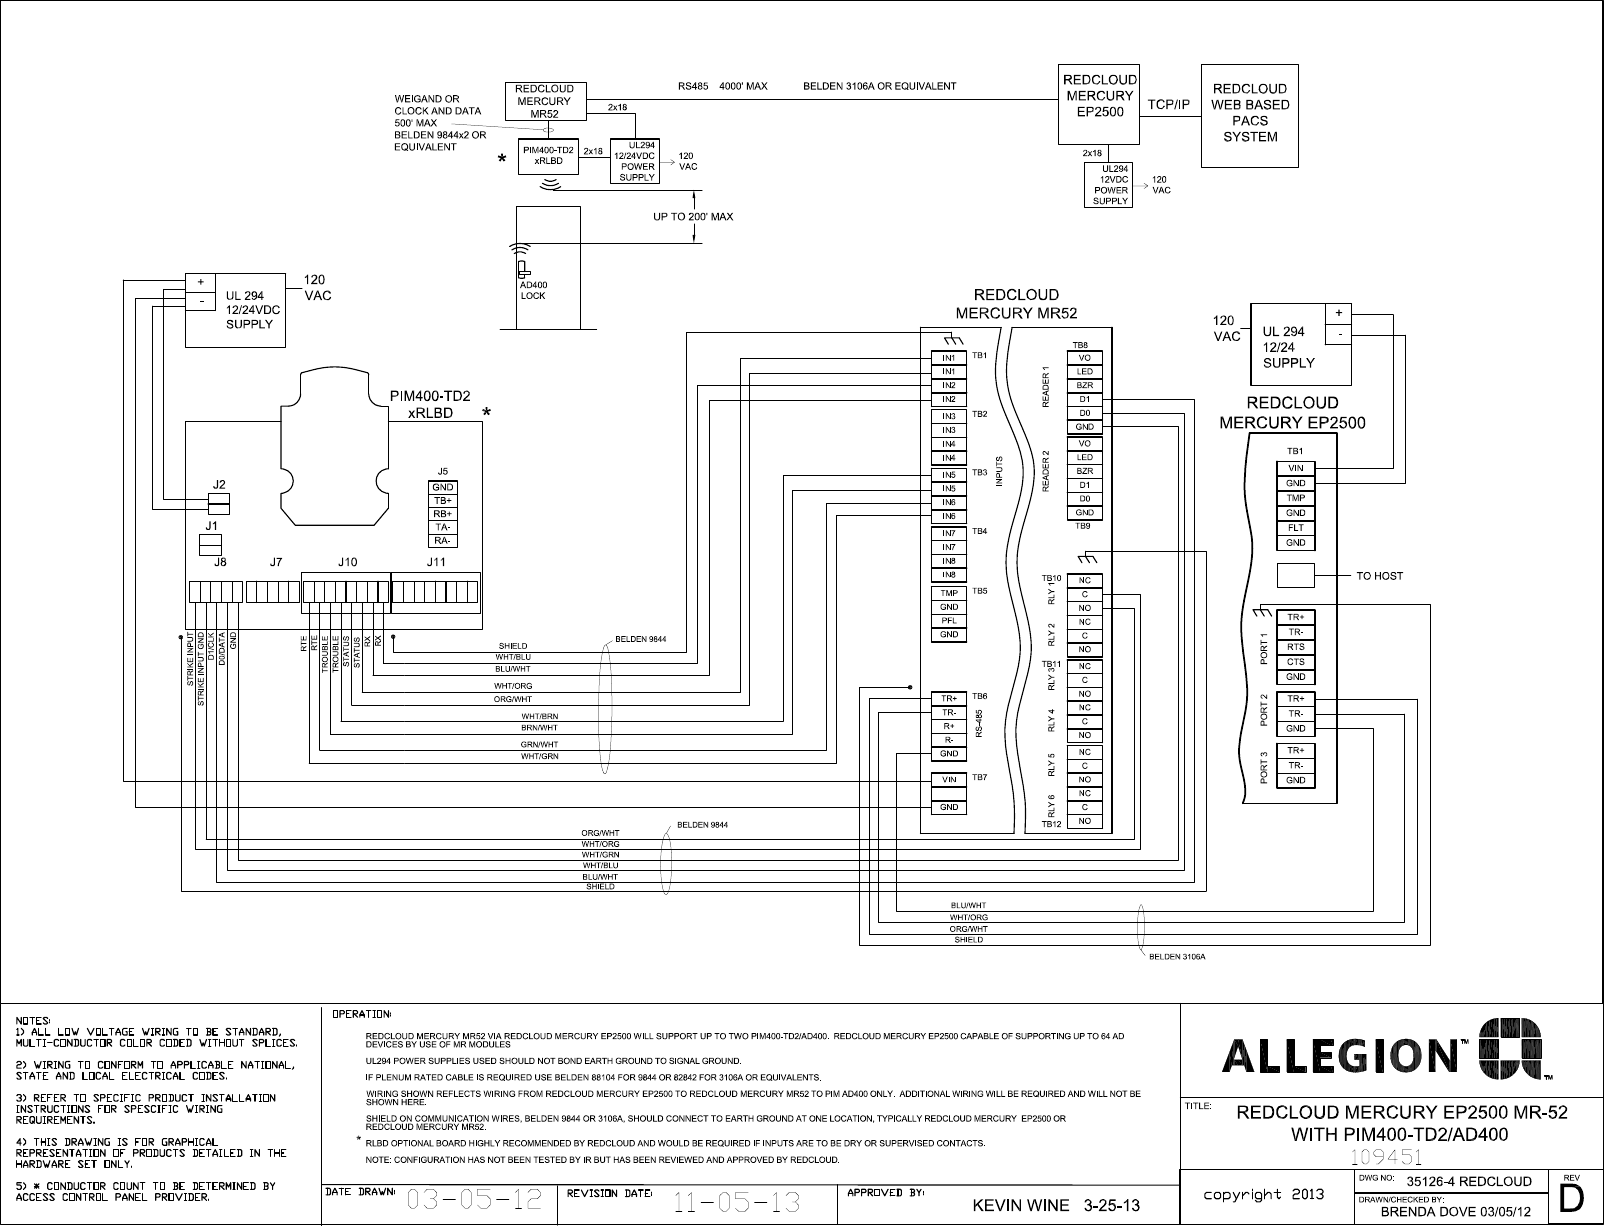 [SCHEMATICS_48ZD]  Schlage Electronics C AD400 Wiring Diagram Red Cloud EP2500 MR52 Wiegand  109451 | Wiegand Wiring Diagram |  | UserManual.wiki